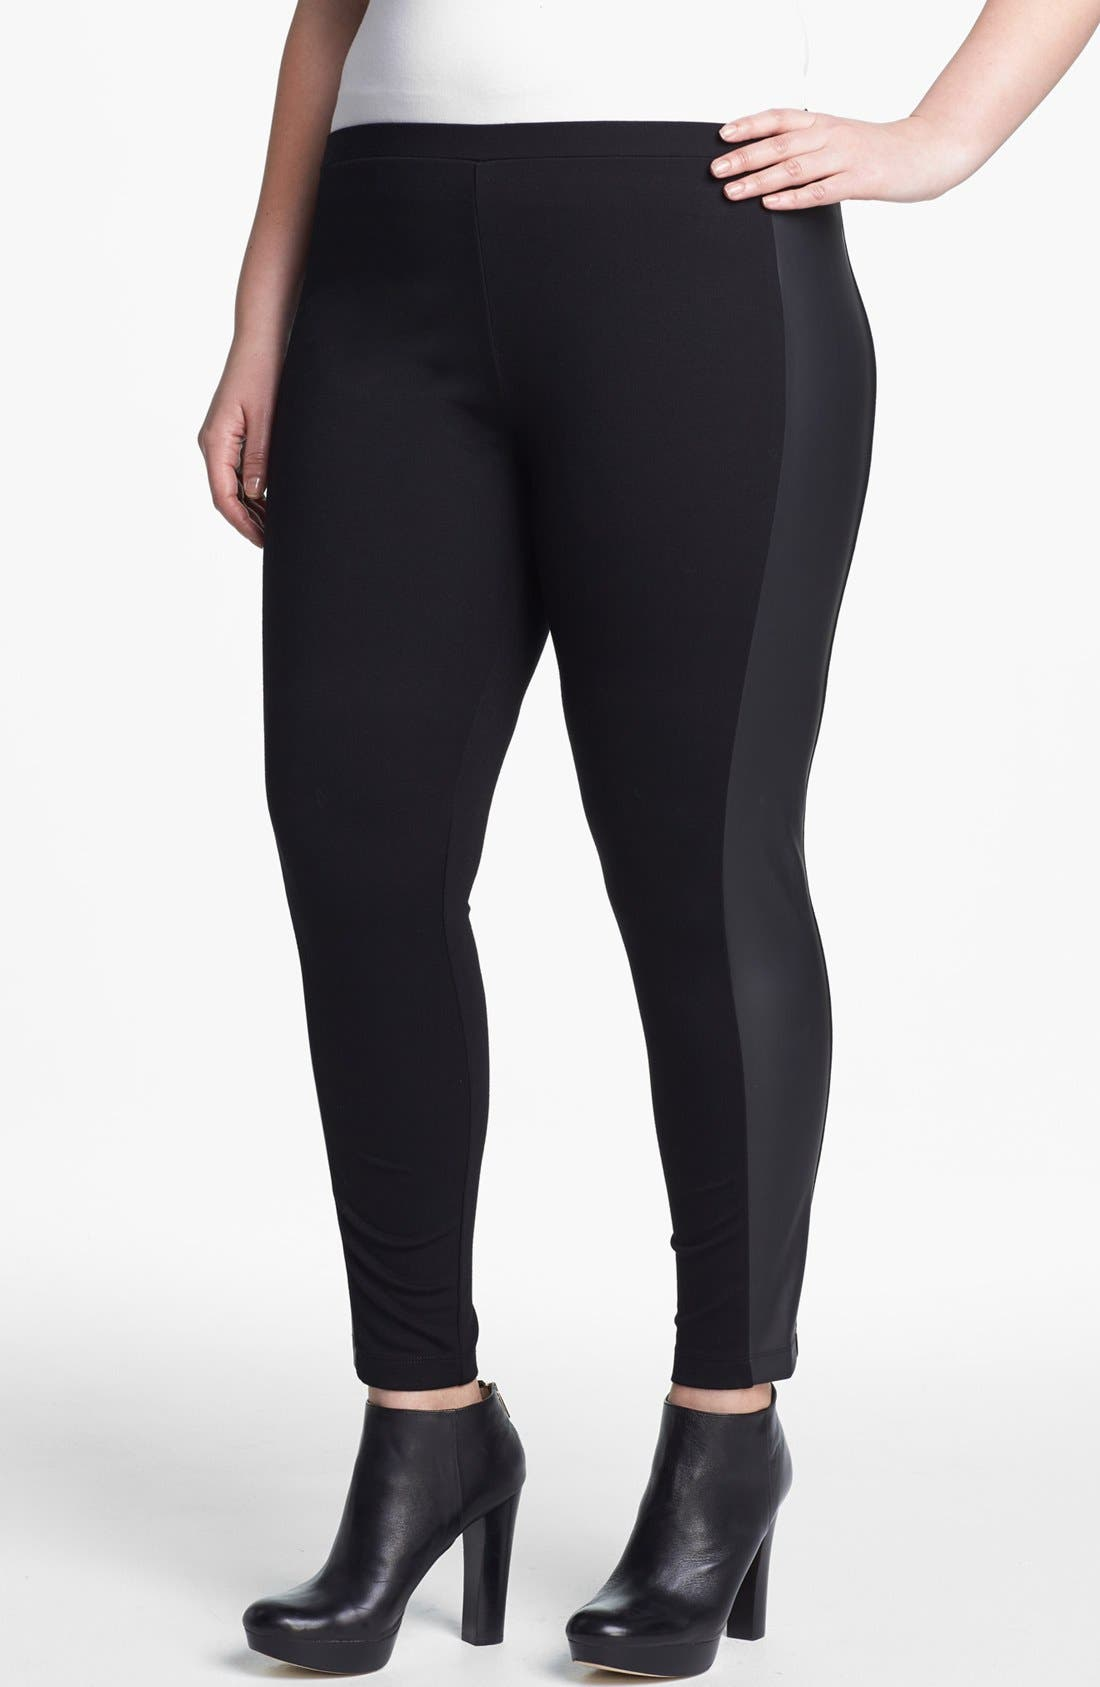 Alternate Image 1 Selected - Vince Camuto Faux Leather Trim Leggings (Plus Size)